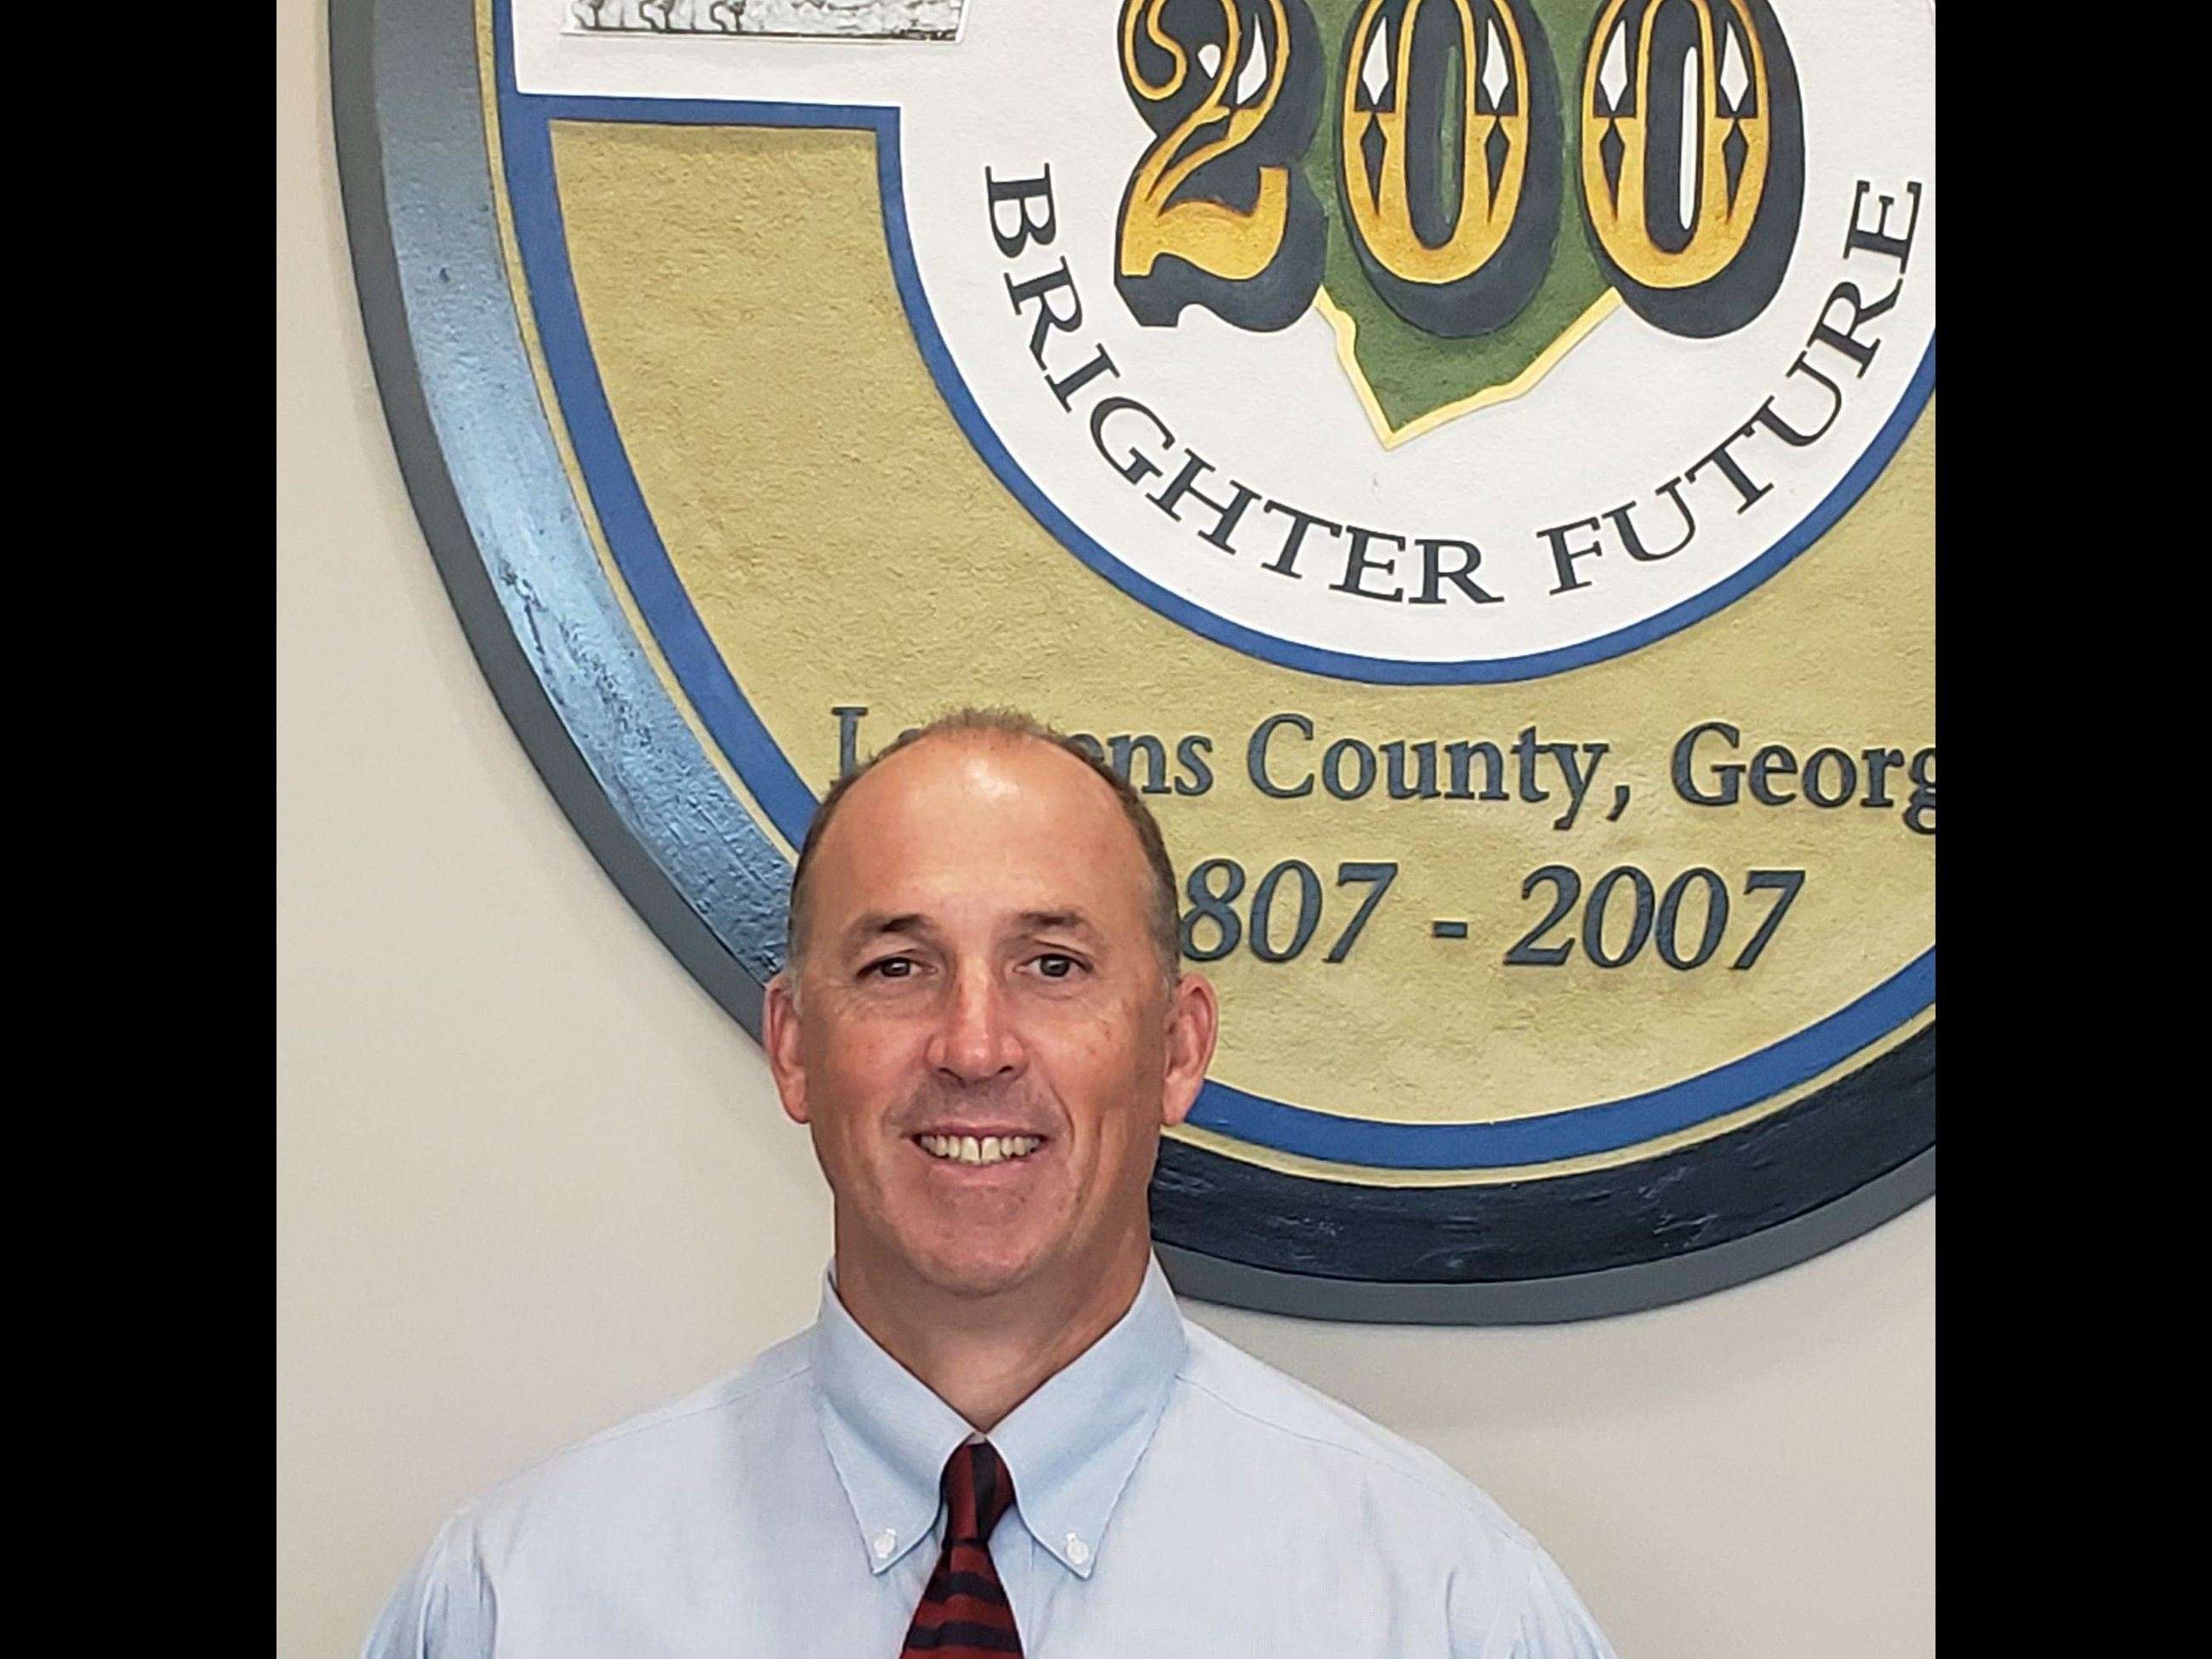 Bryan Rogers, County Administrator